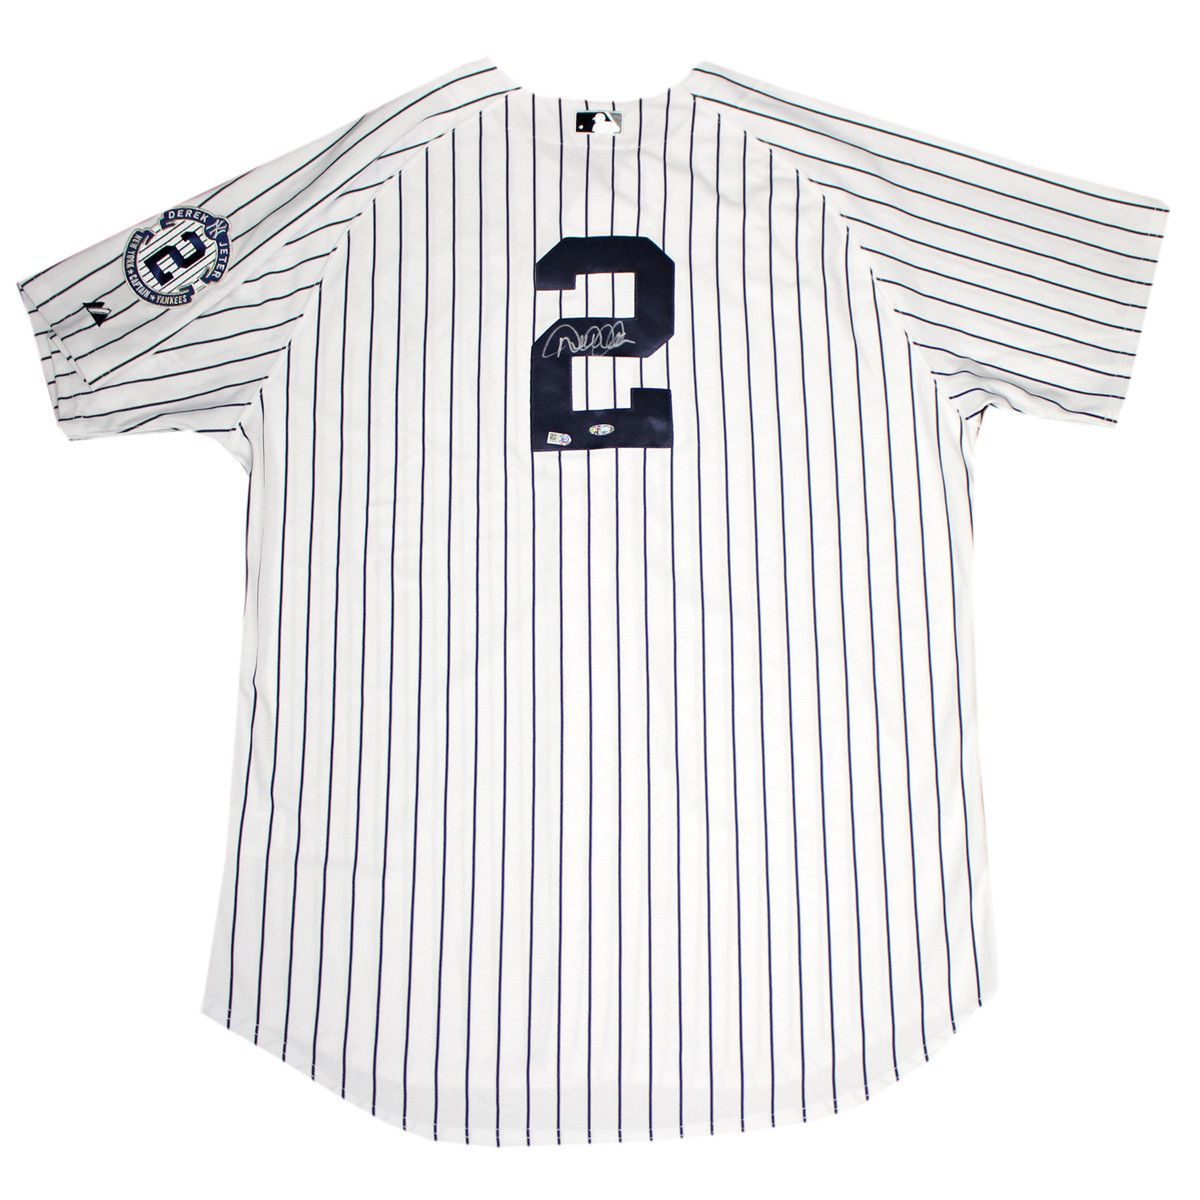 new styles 7f1dd 7acf4 Derek jeter signed authentic pinstripe jersey with ...